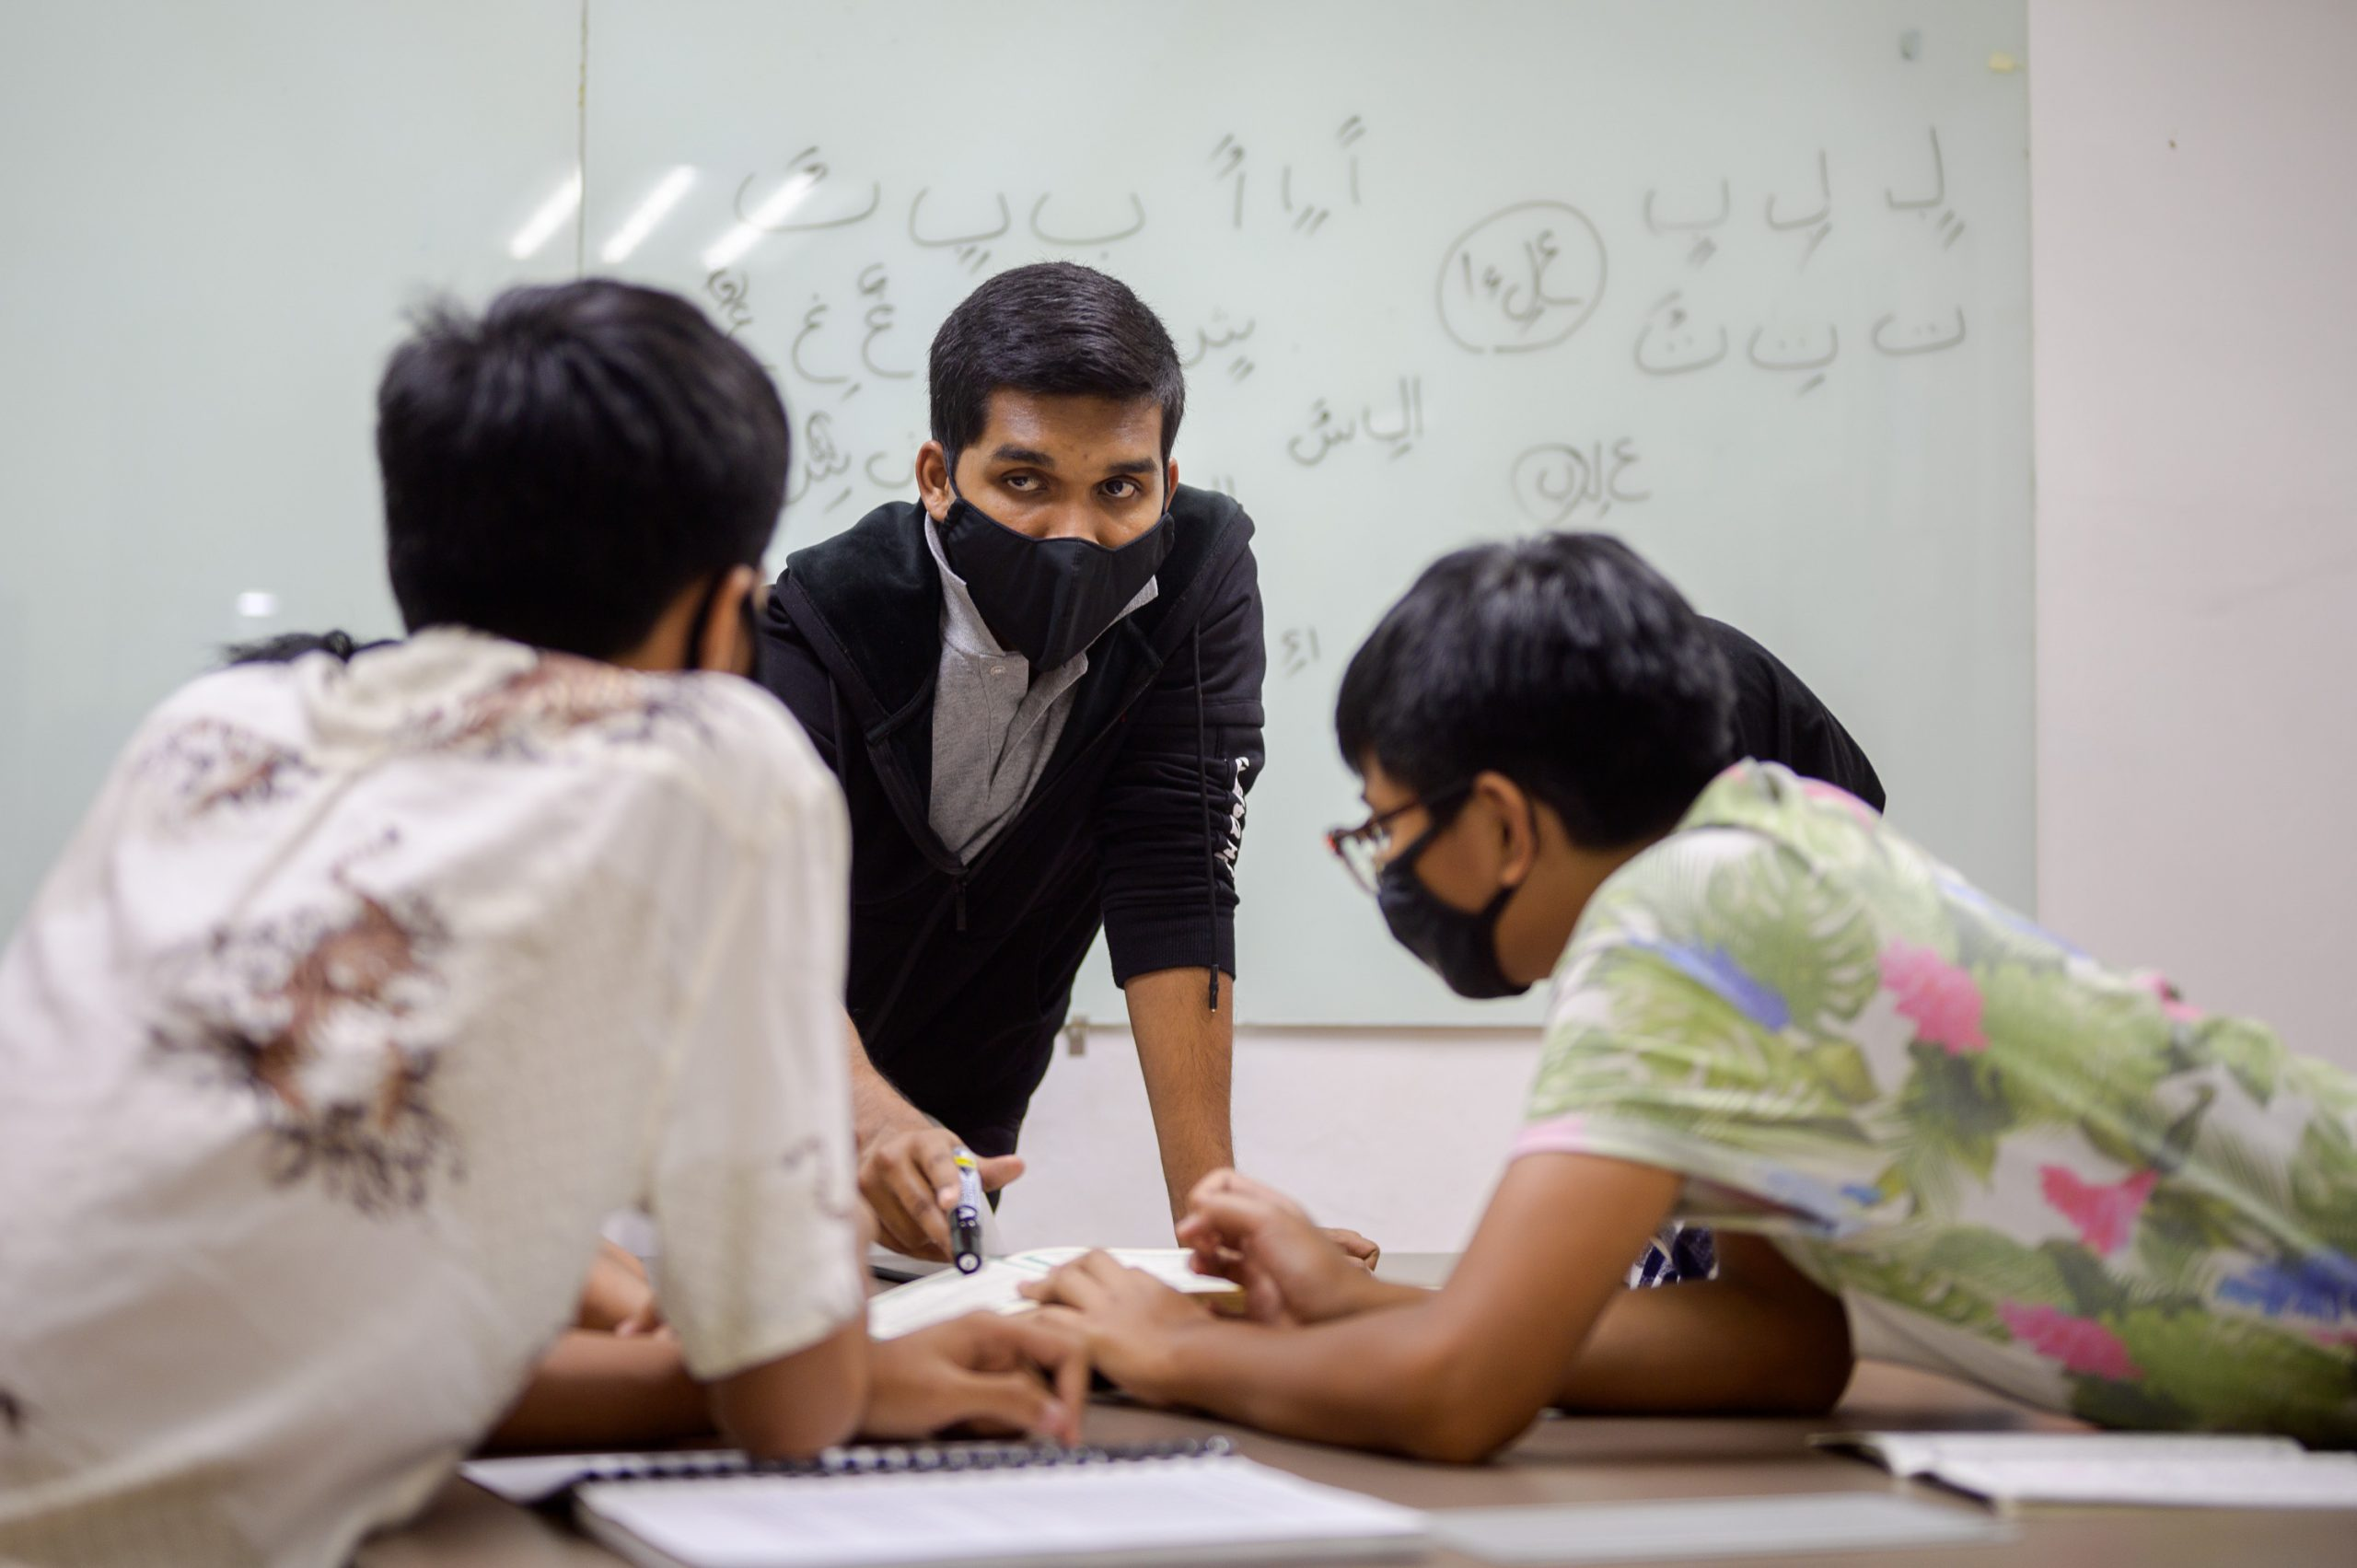 Beneficiaries have the opportunity to learn language and culture at Human HeartS. Volunteer Ali teaches the difference between Jawi and Arabic script to older youths.